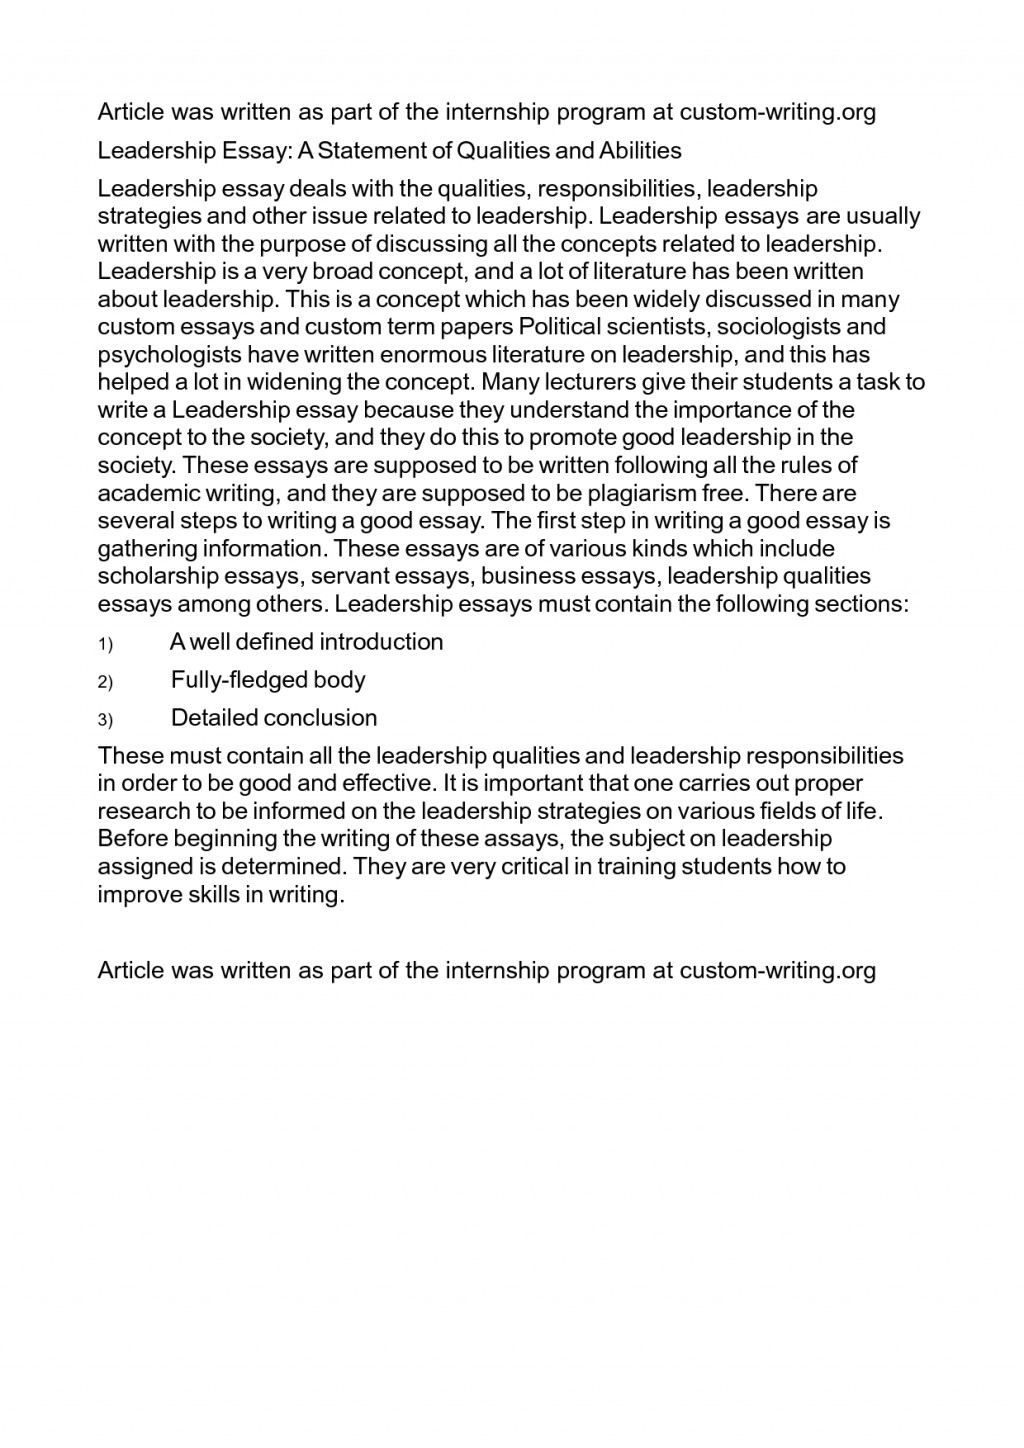 017 What Are The Qualities Of Good Leader Essay Example Formidable A Characteristics Pdf Introduction Make Large